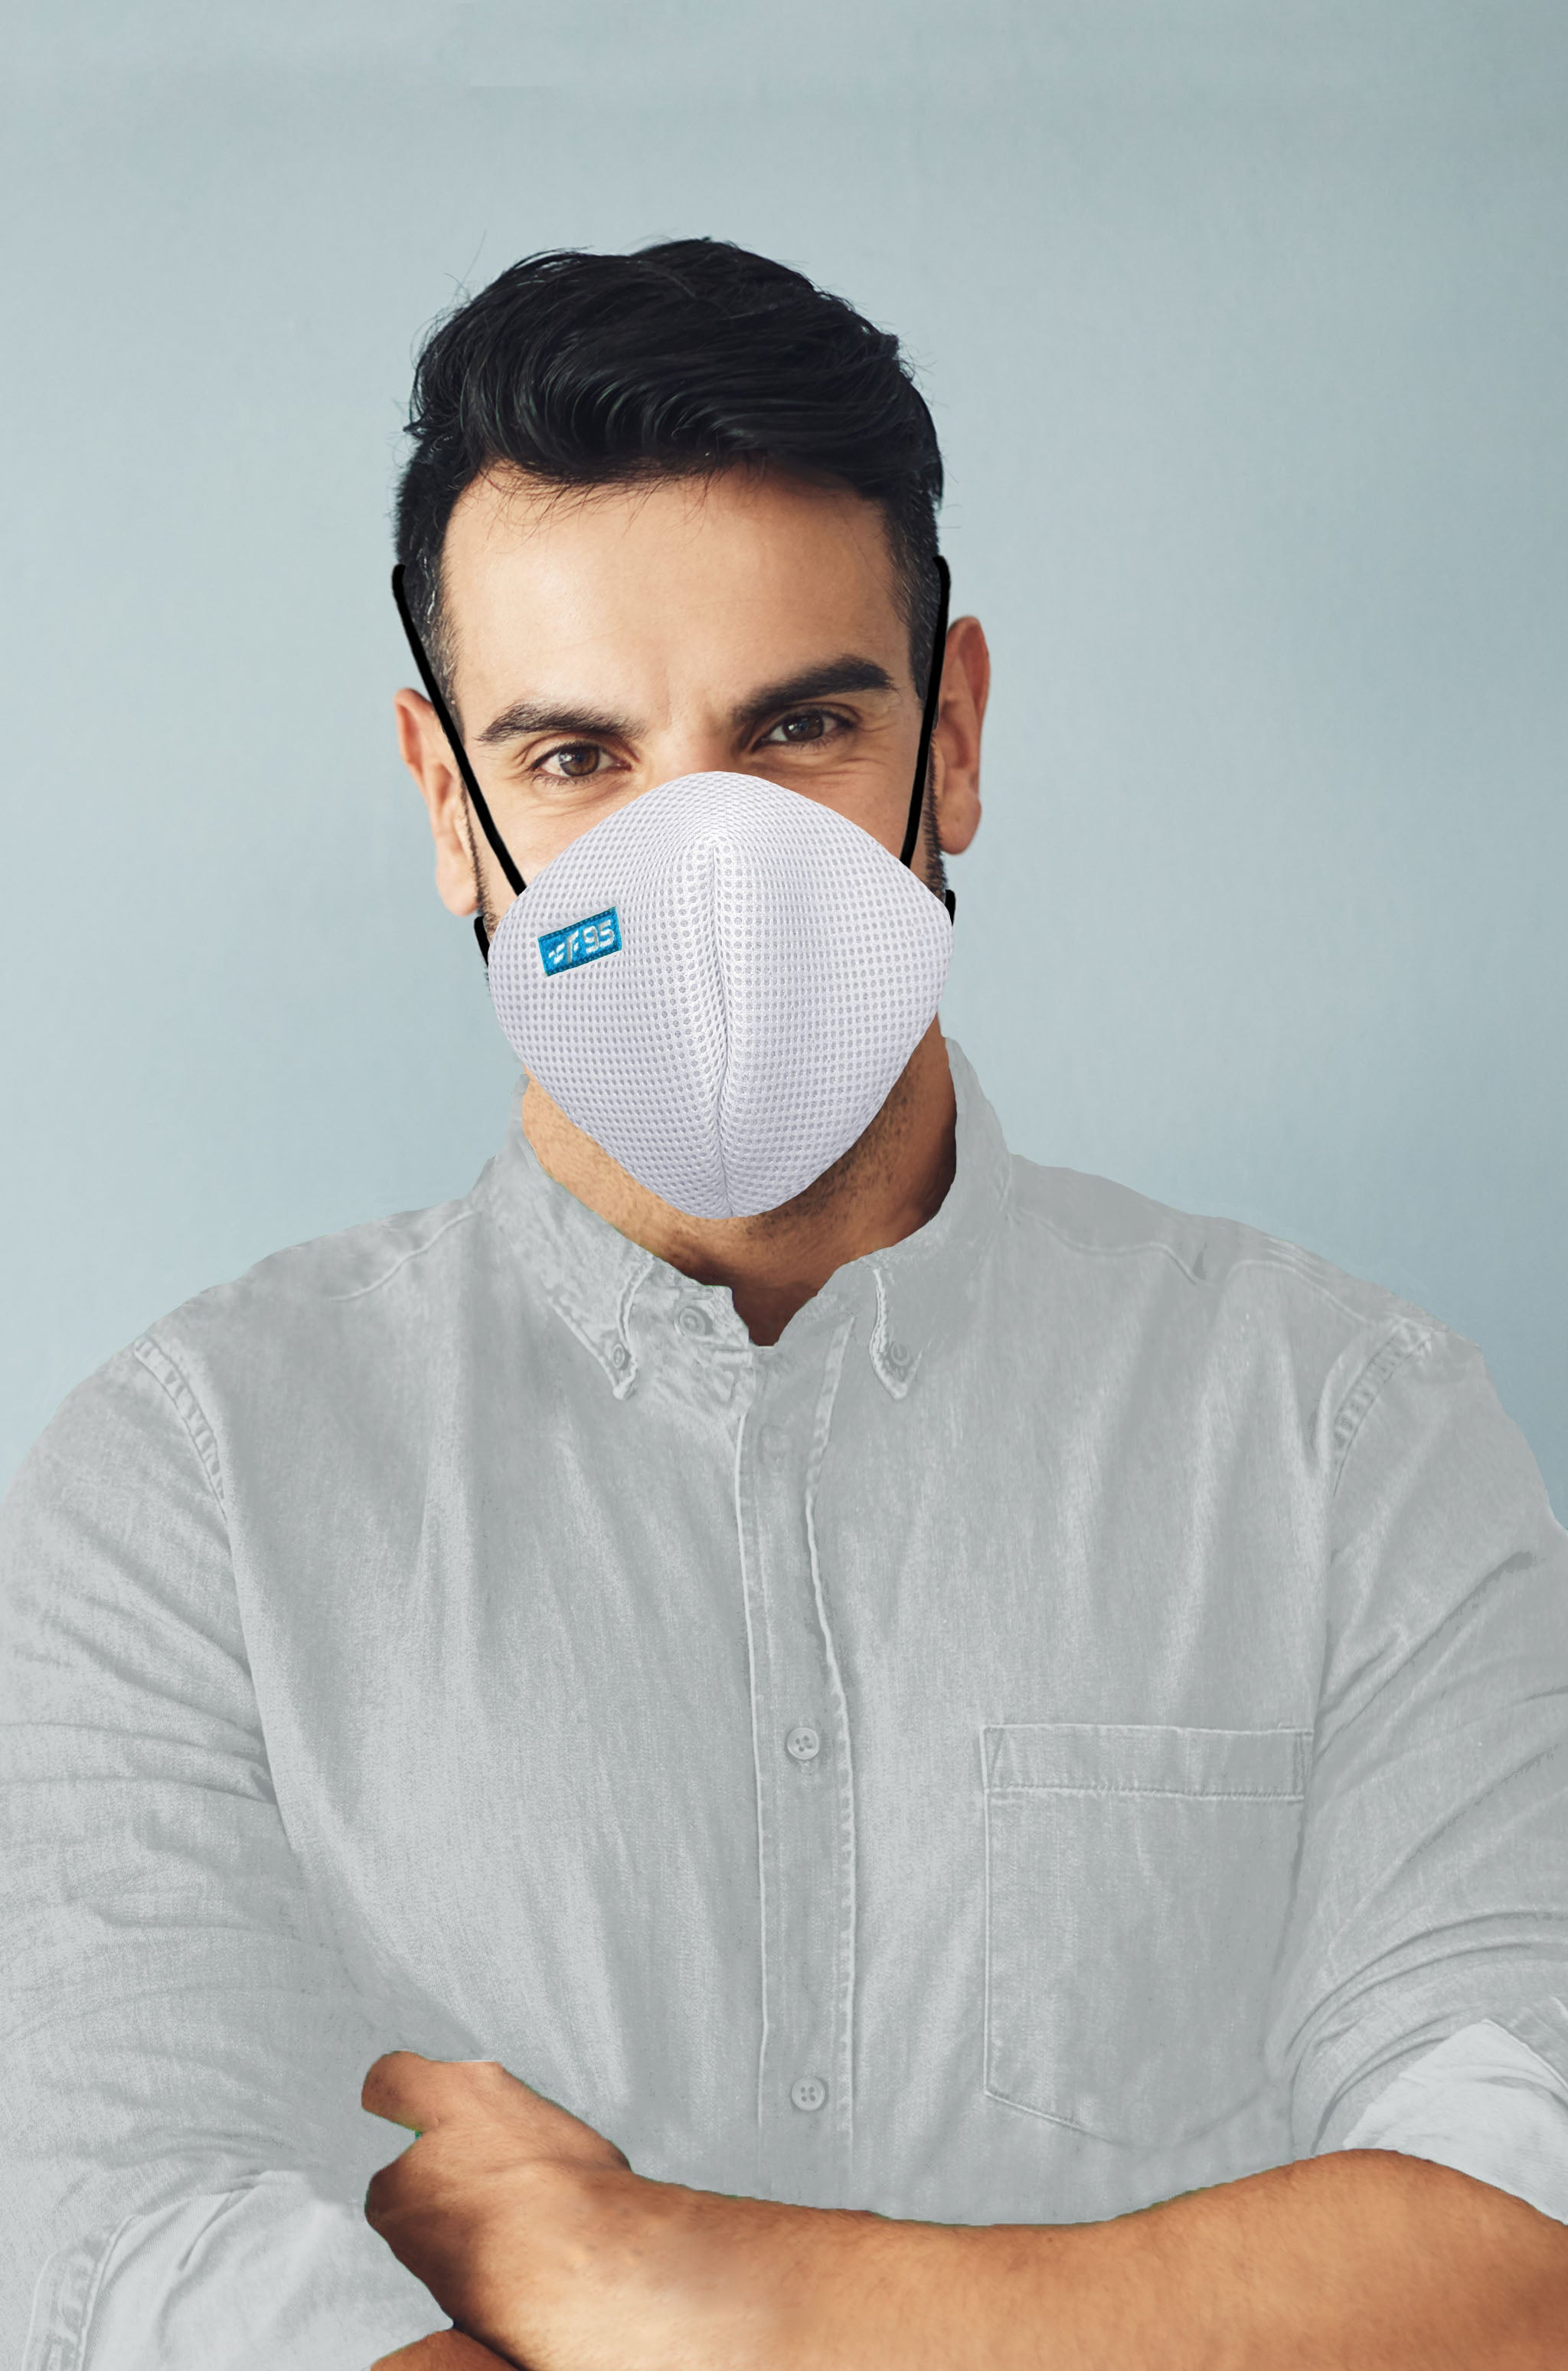 F Gear Pearl F95 Mask White Pack of 1 Safeguard 7 layer ISO CE SITRA lab certified >95% Bacteria Filtration